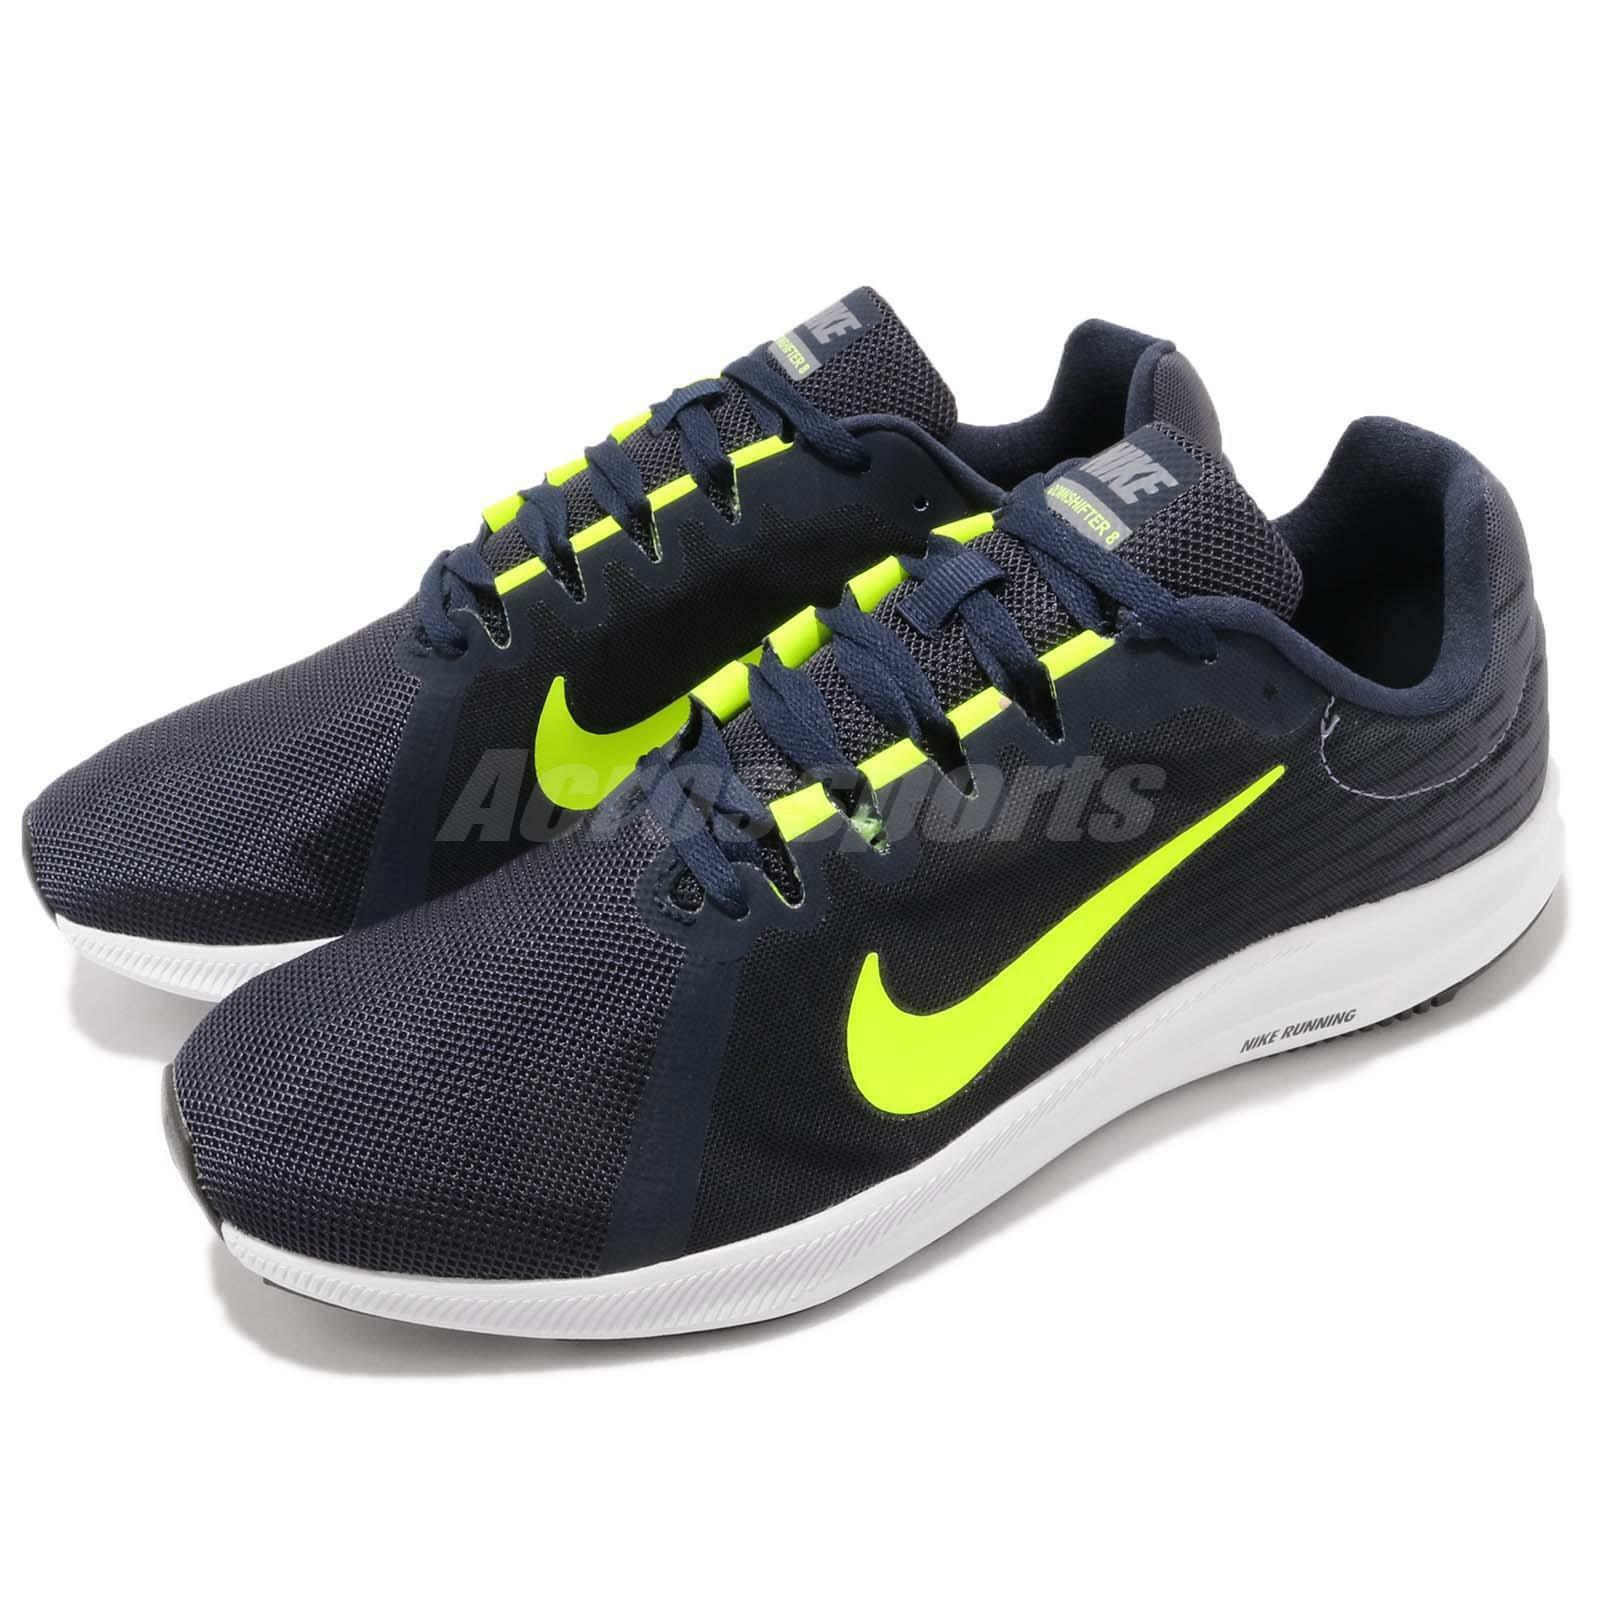 Nike Downshifter 8 Navy Obsidian Volt Mens Running Shoes Trainers 908984-007